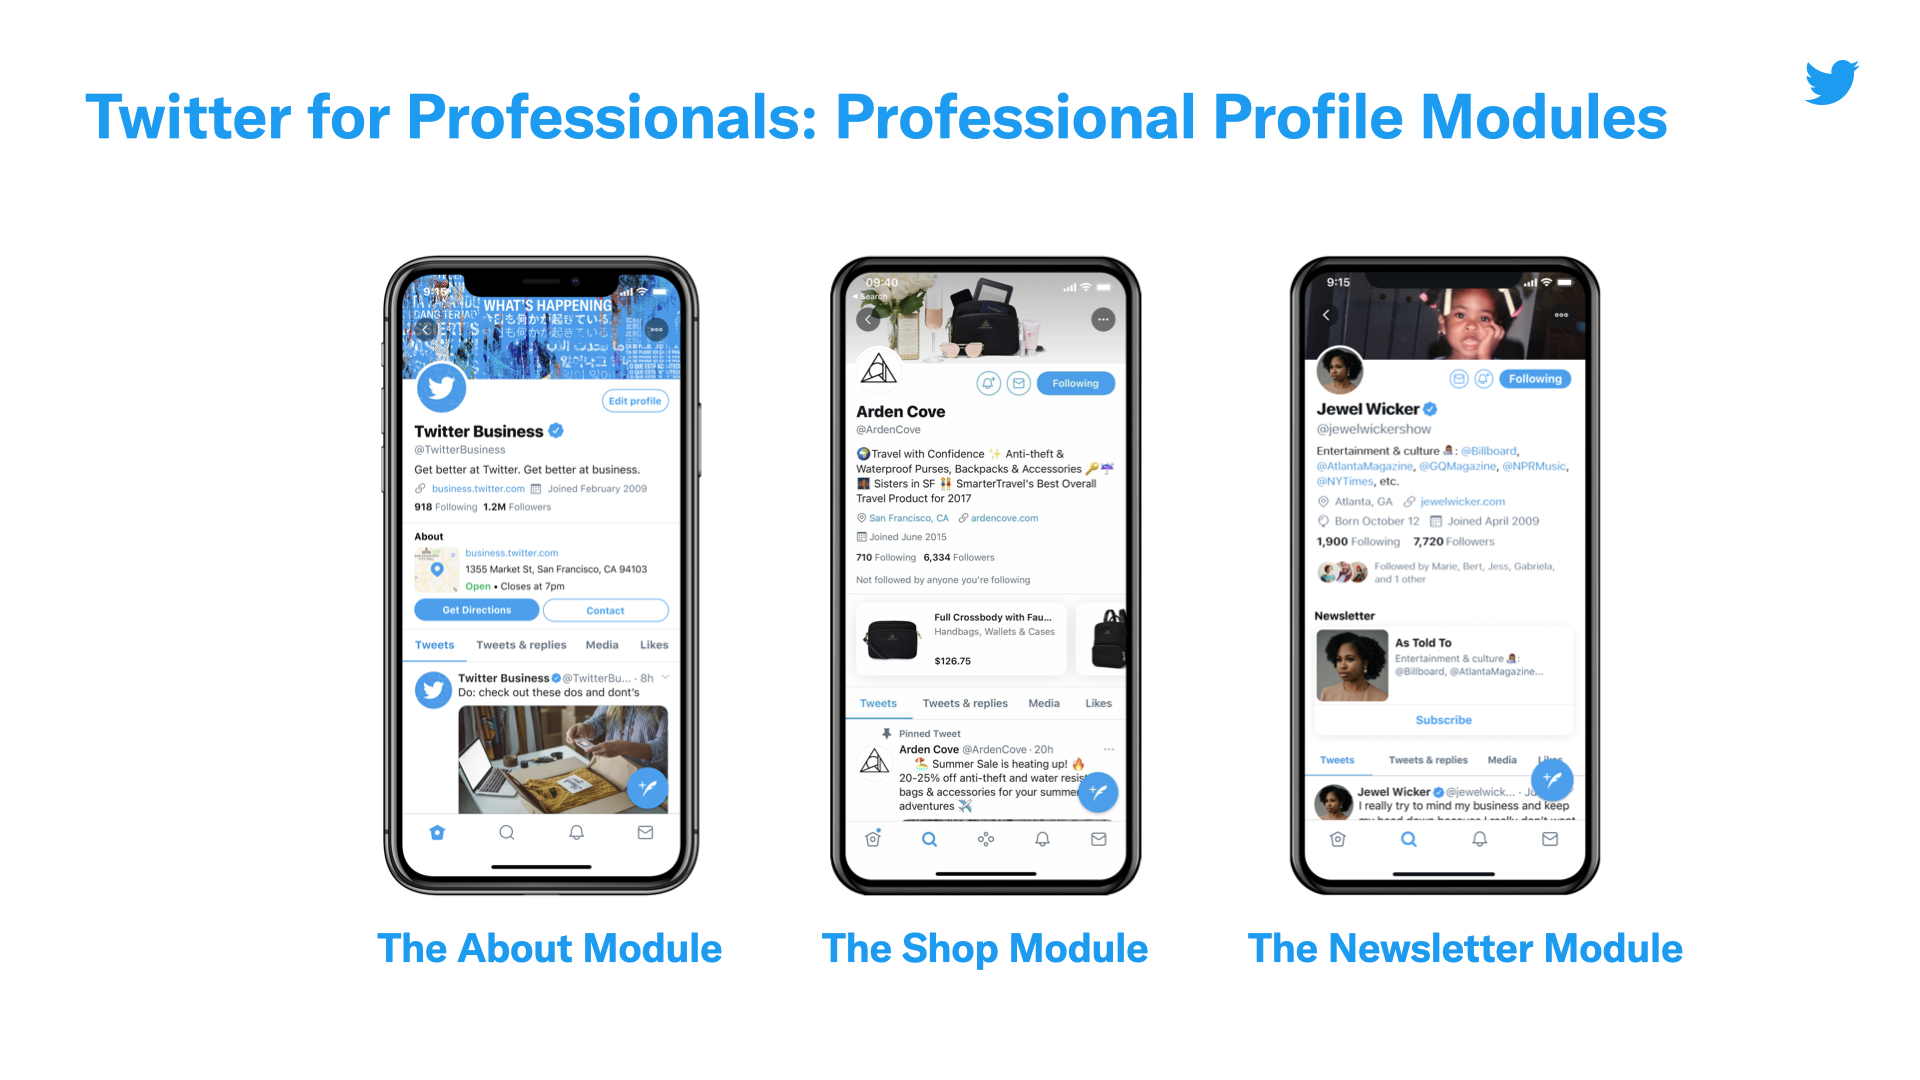 Twitter Profiles was first introduced in April 2021 with the About Module